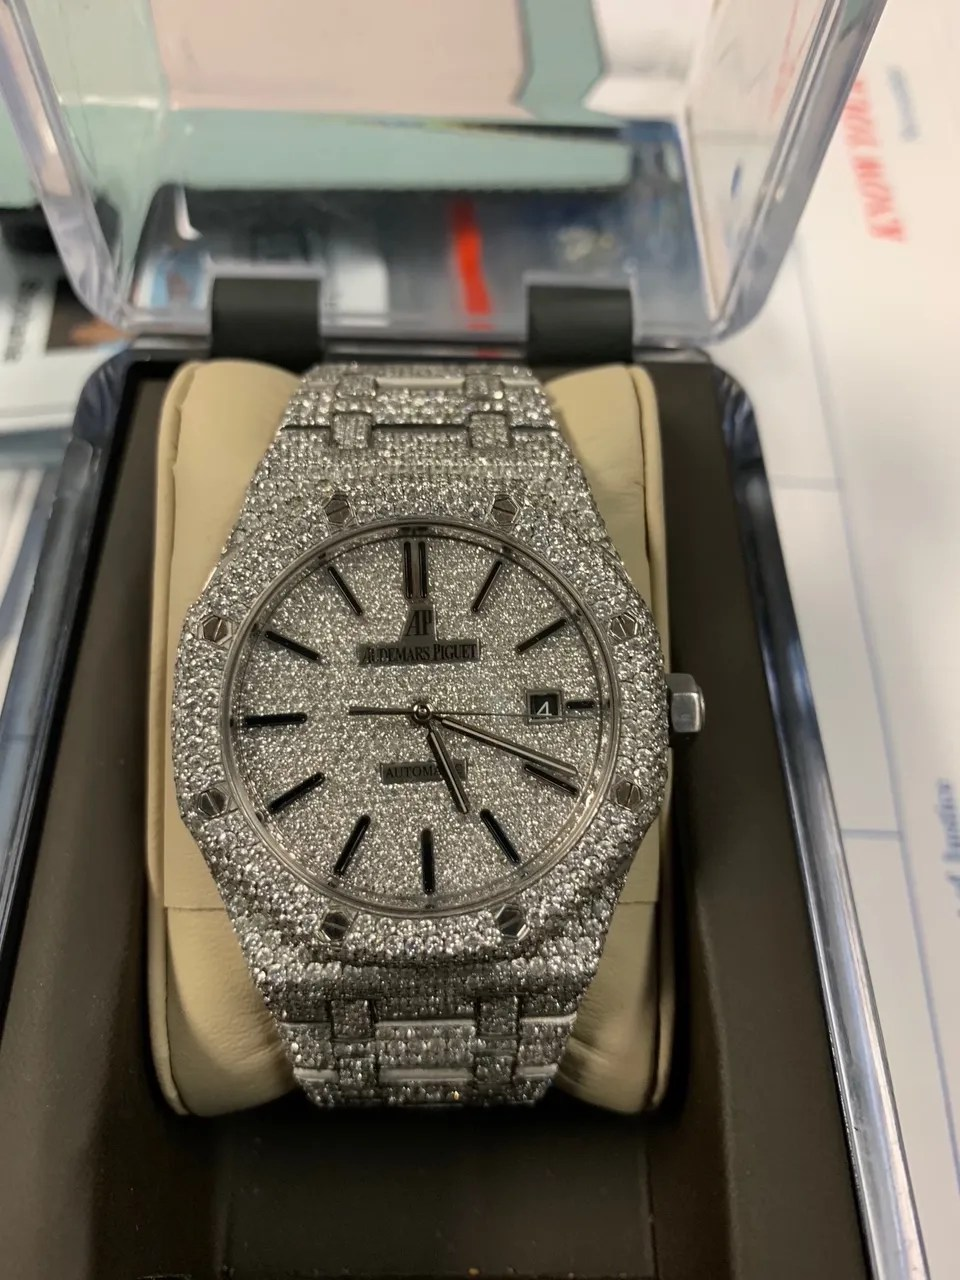 Diamond encrusted watch seized during a drug investigation.